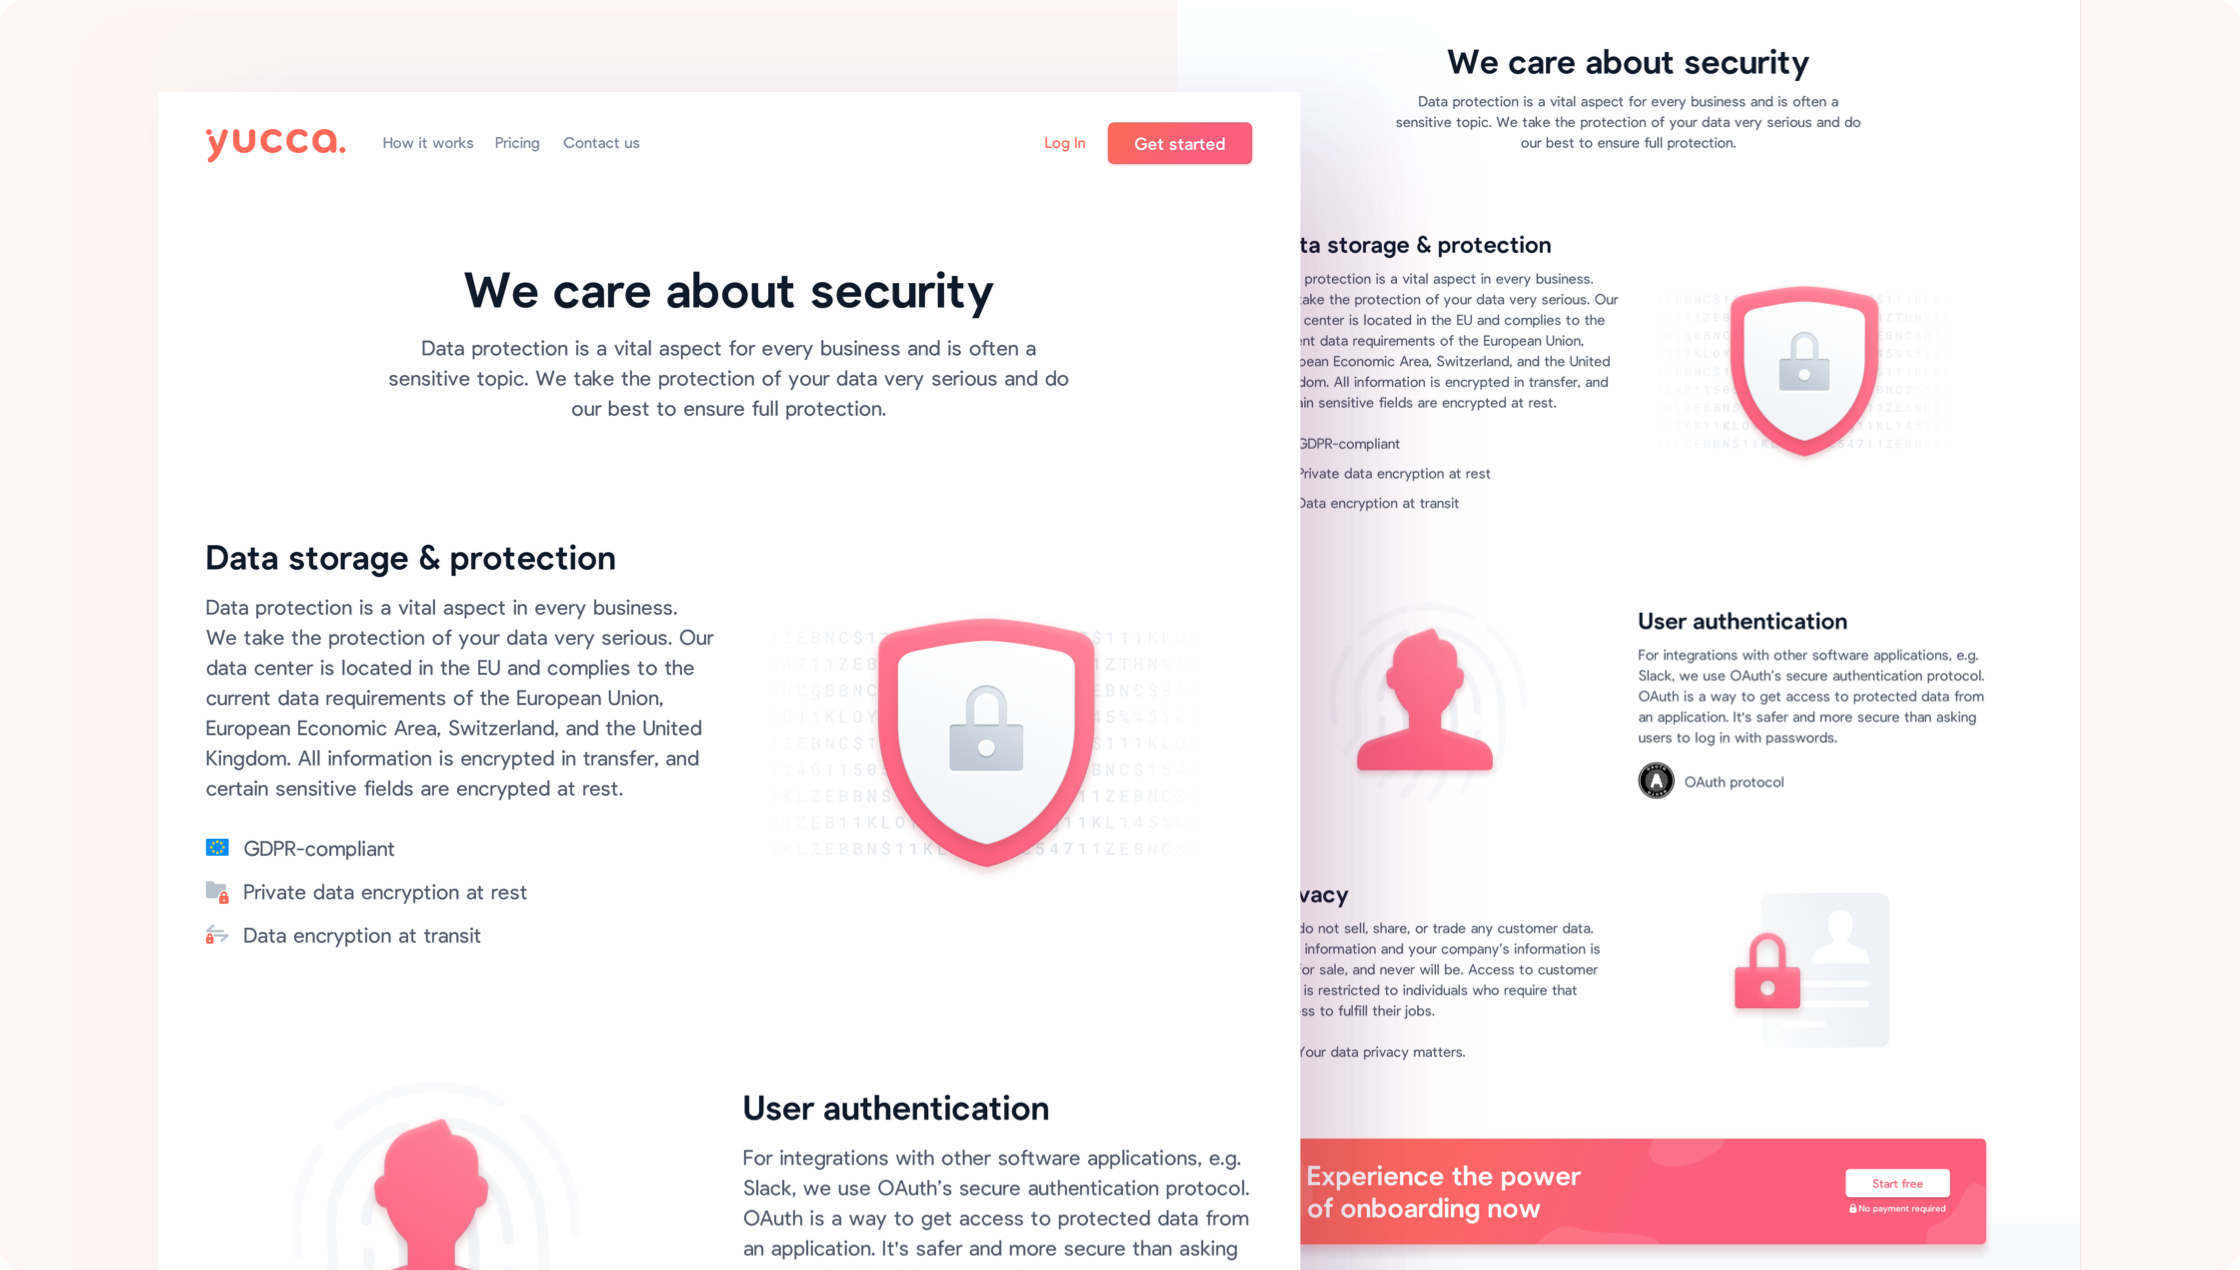 Security page of yuccaHR.